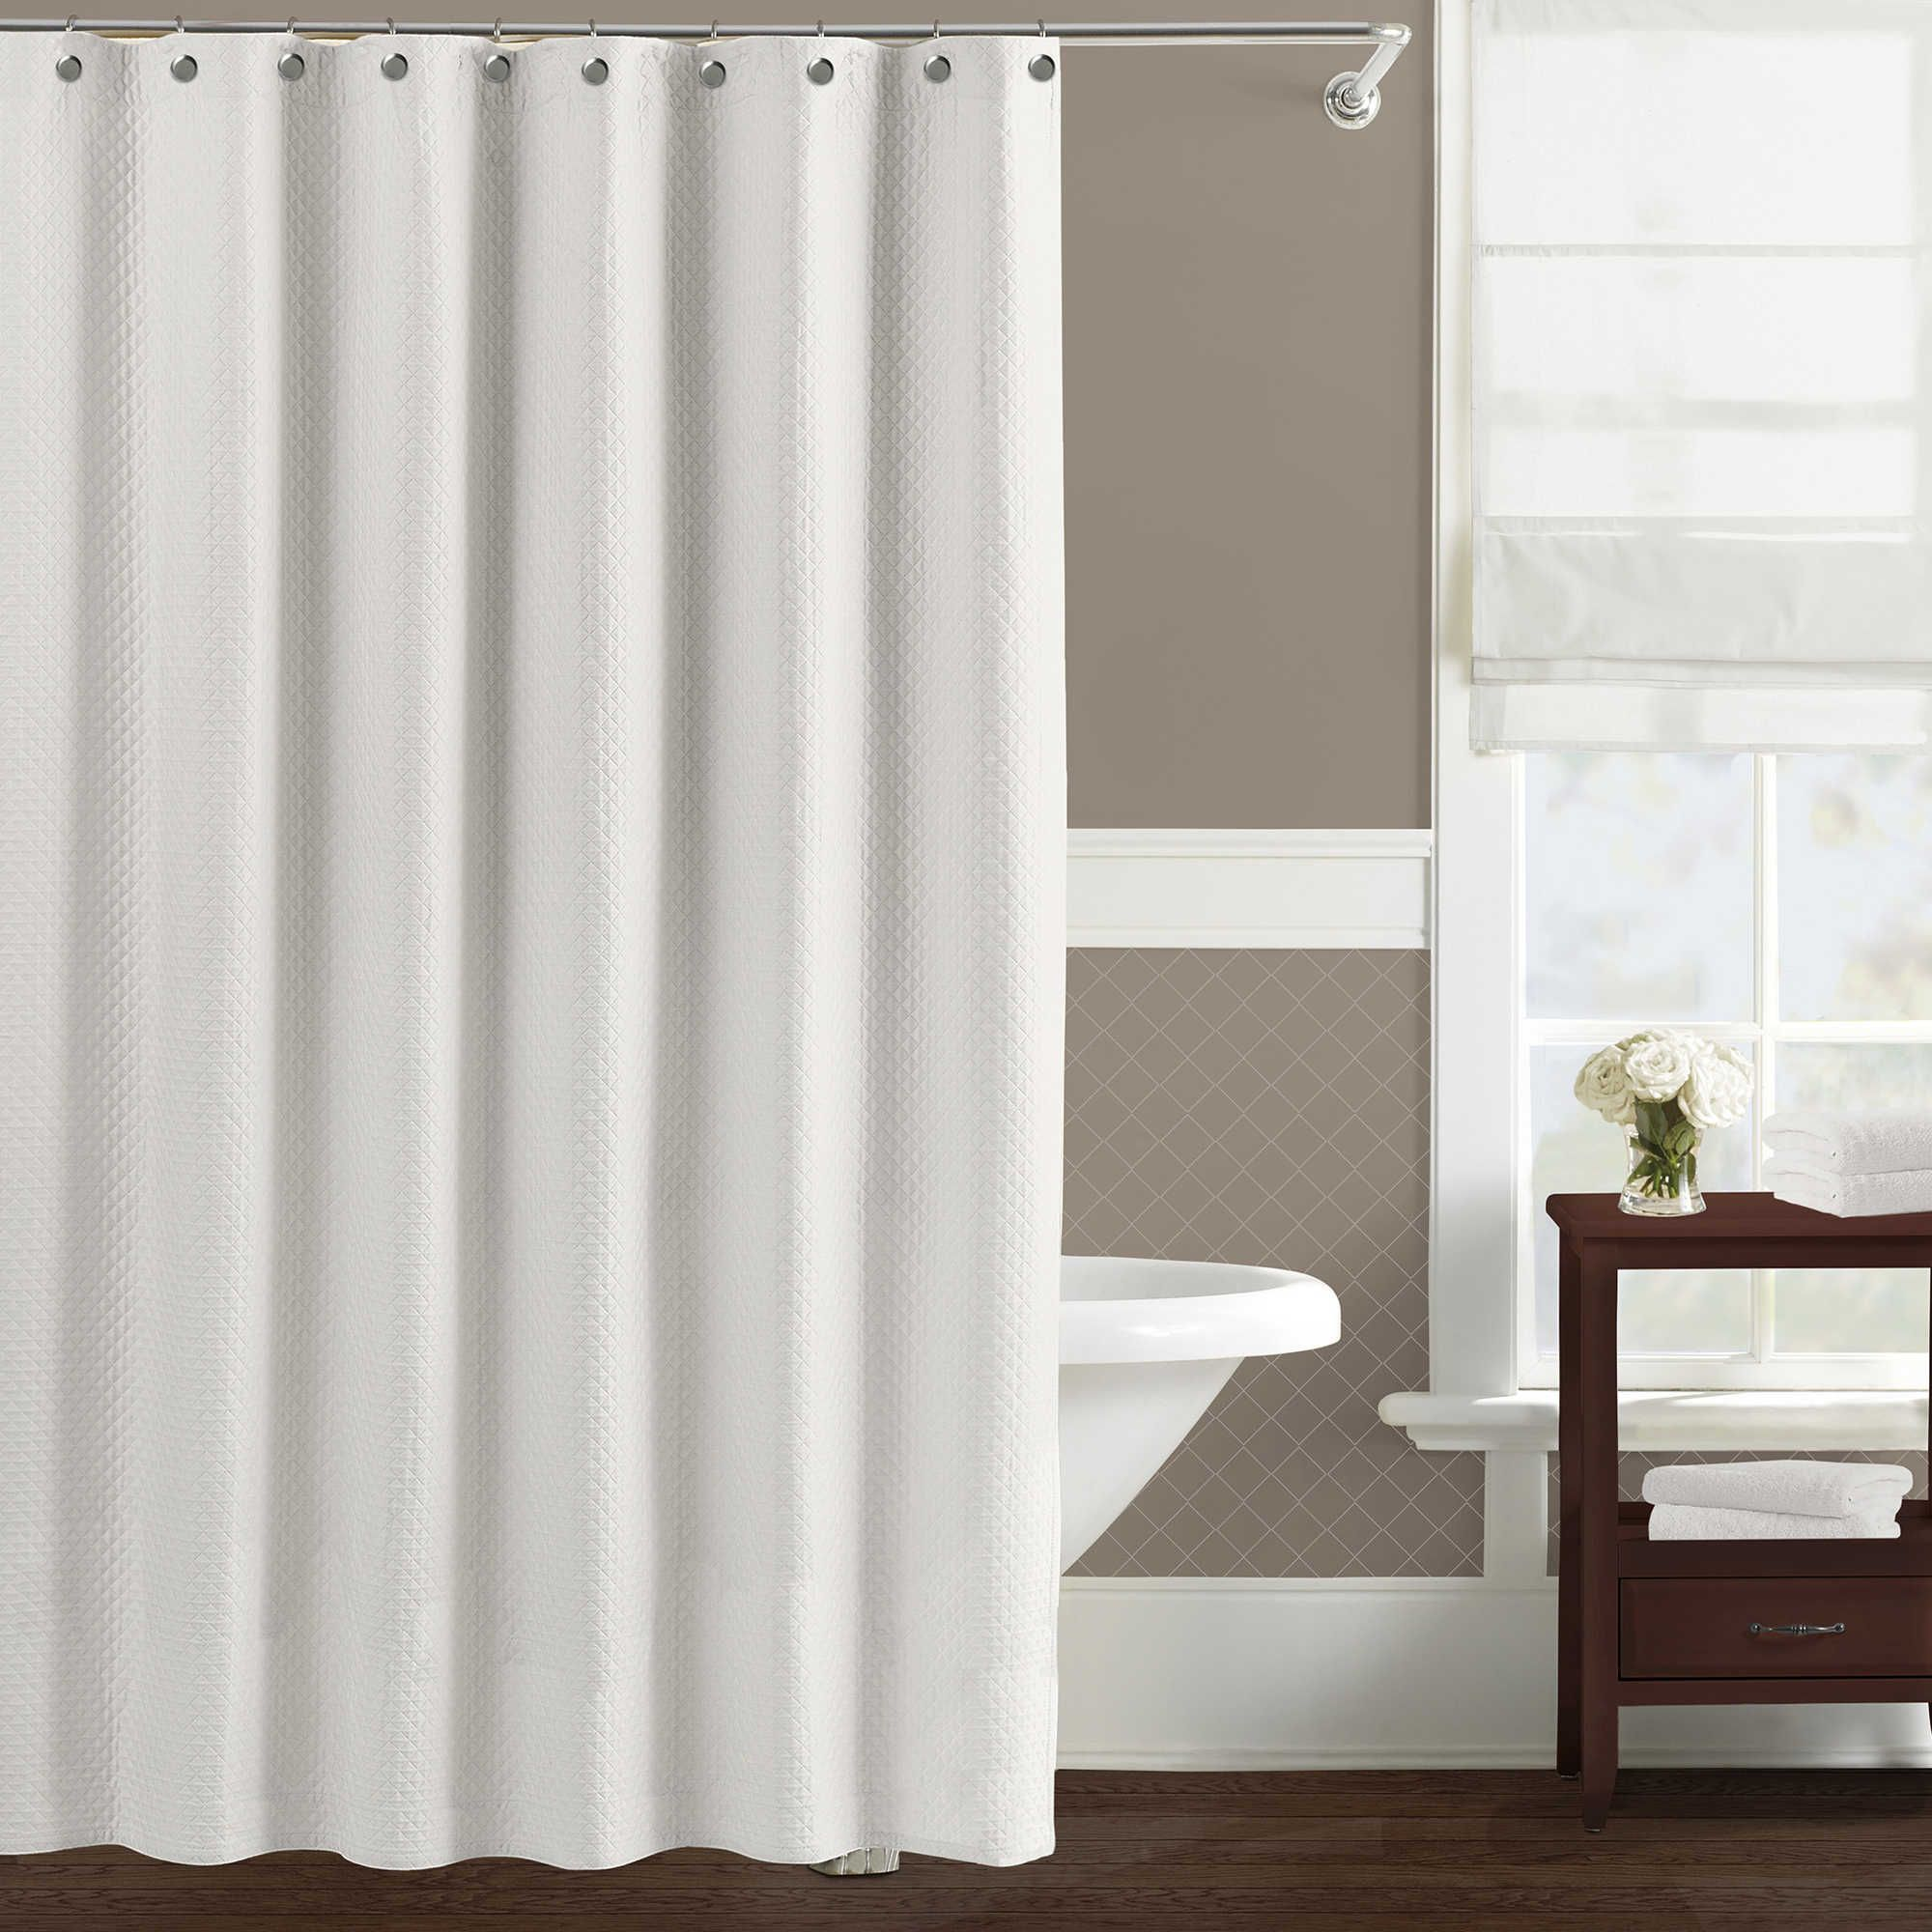 Lamont Home Diamond Matelasse 72 Inch X 96 Inch Extra Long Shower Curtain In White Stall Shower Curtain Luxury Shower Curtain White Shower Curtain